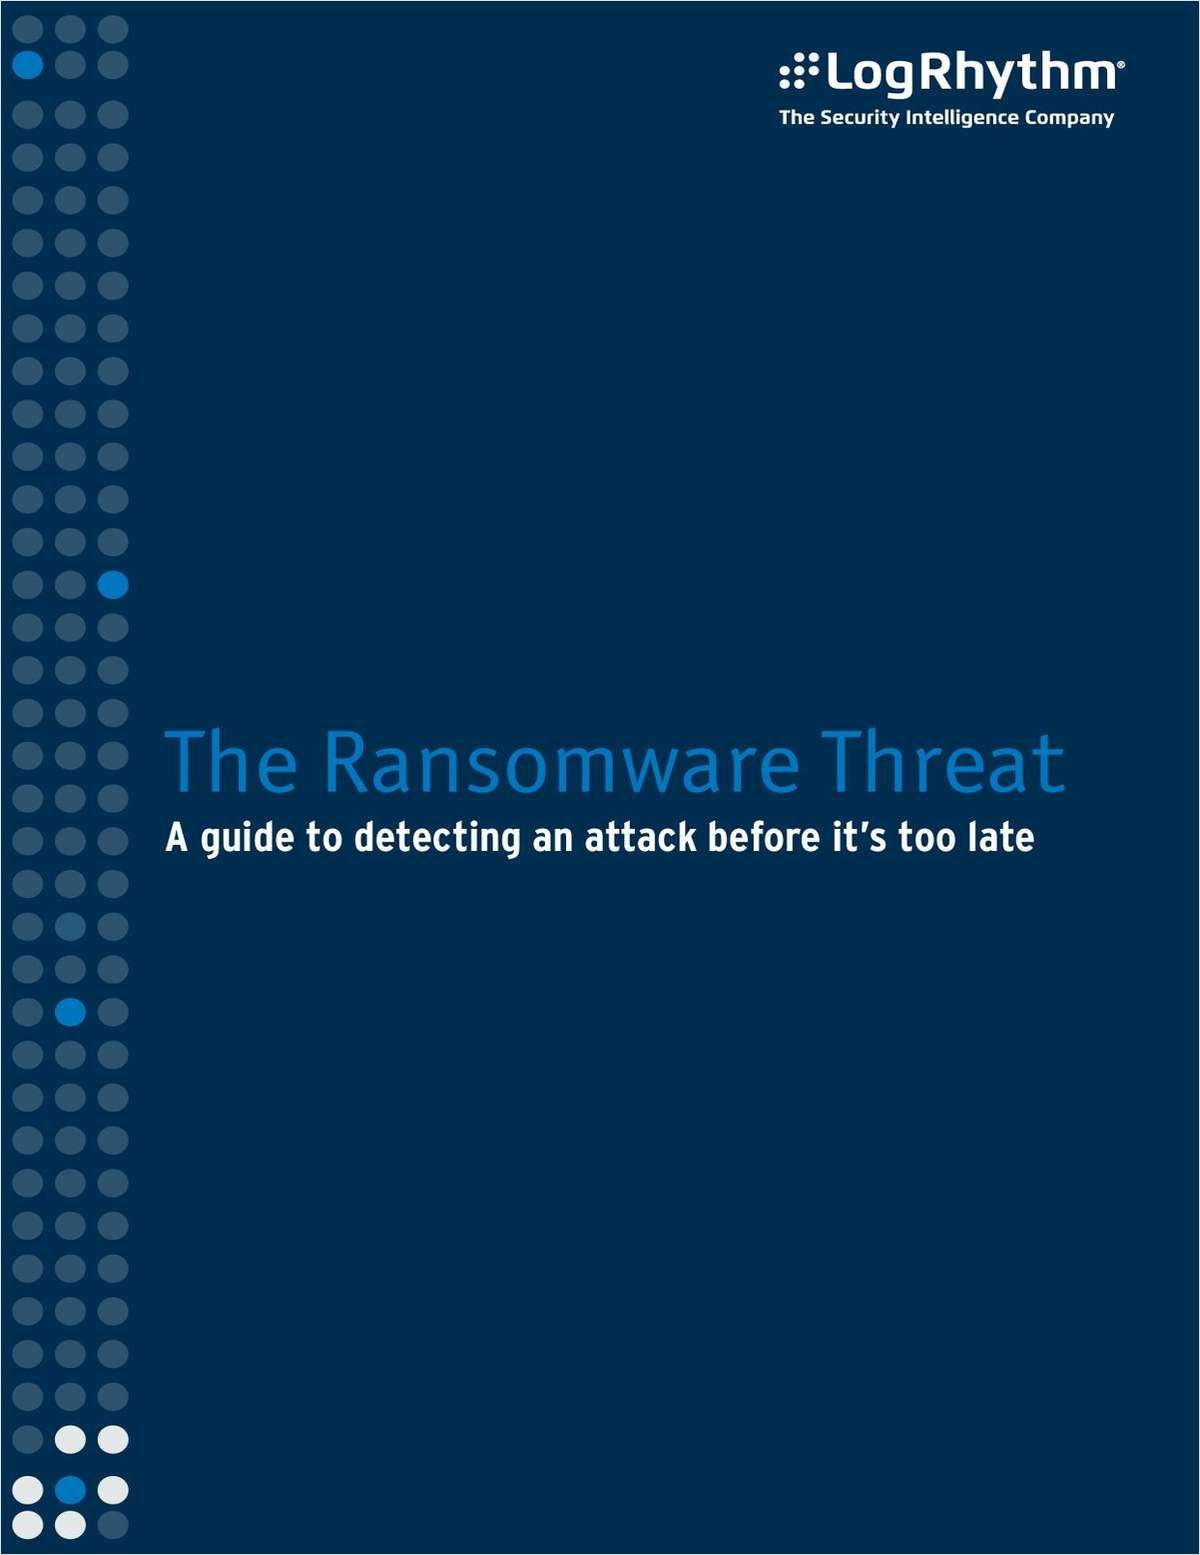 The Ransomware Threat: A Guide to Detecting an Attack Before It's Too Late